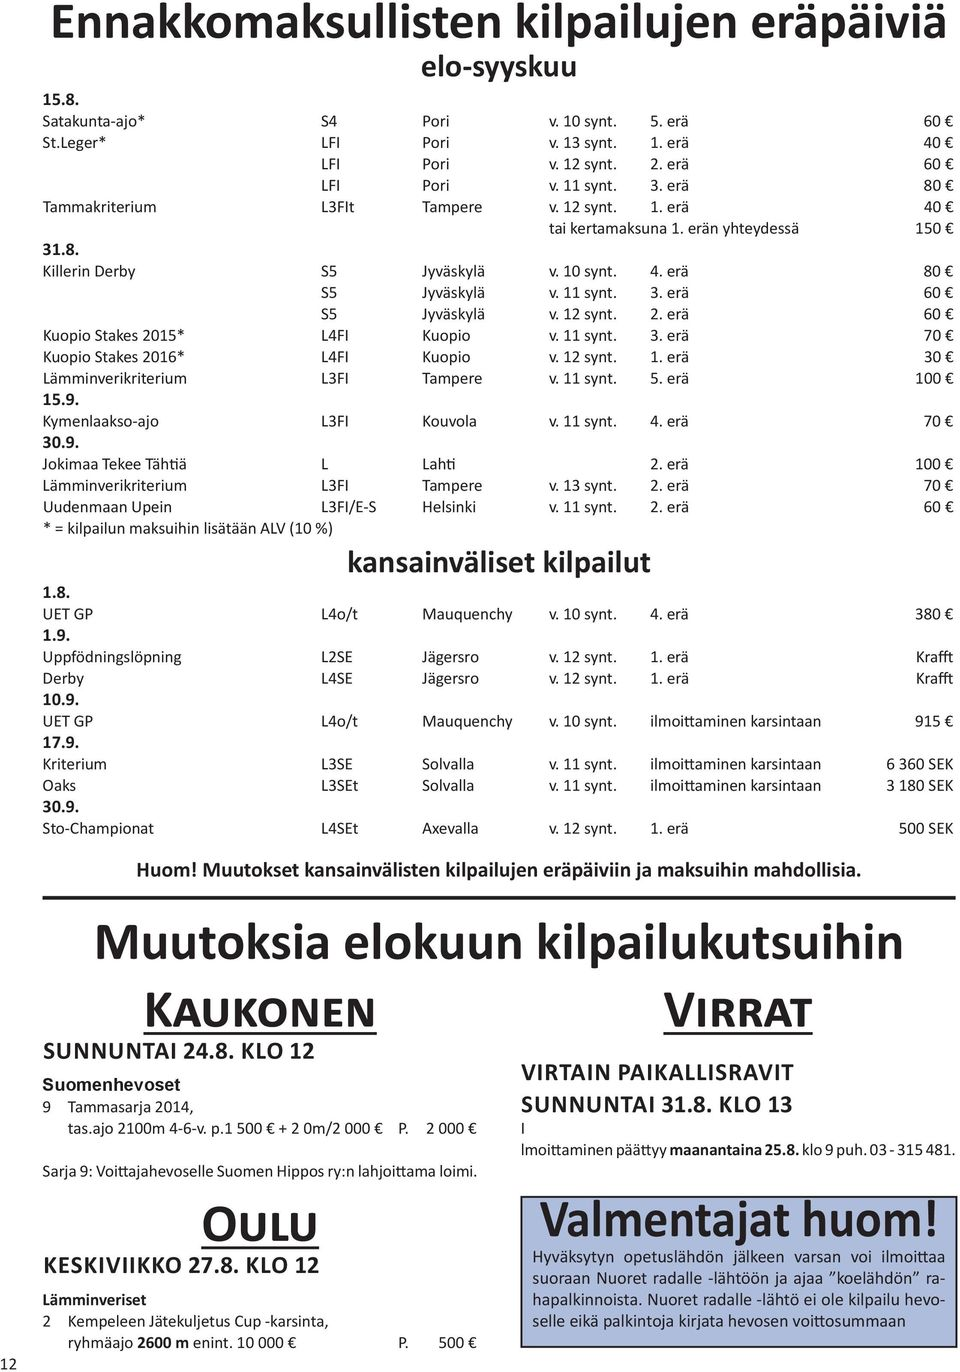 12 synt. 2. erä 60 Kuopio Stakes 2015* L4FI Kuopio v. 11 synt. 3. erä 70 Kuopio Stakes 2016* L4FI Kuopio v. 12 synt. 1. erä 30 Lämminverikriterium L3FI Tampere v. 11 synt. 5. erä 100 15.9.